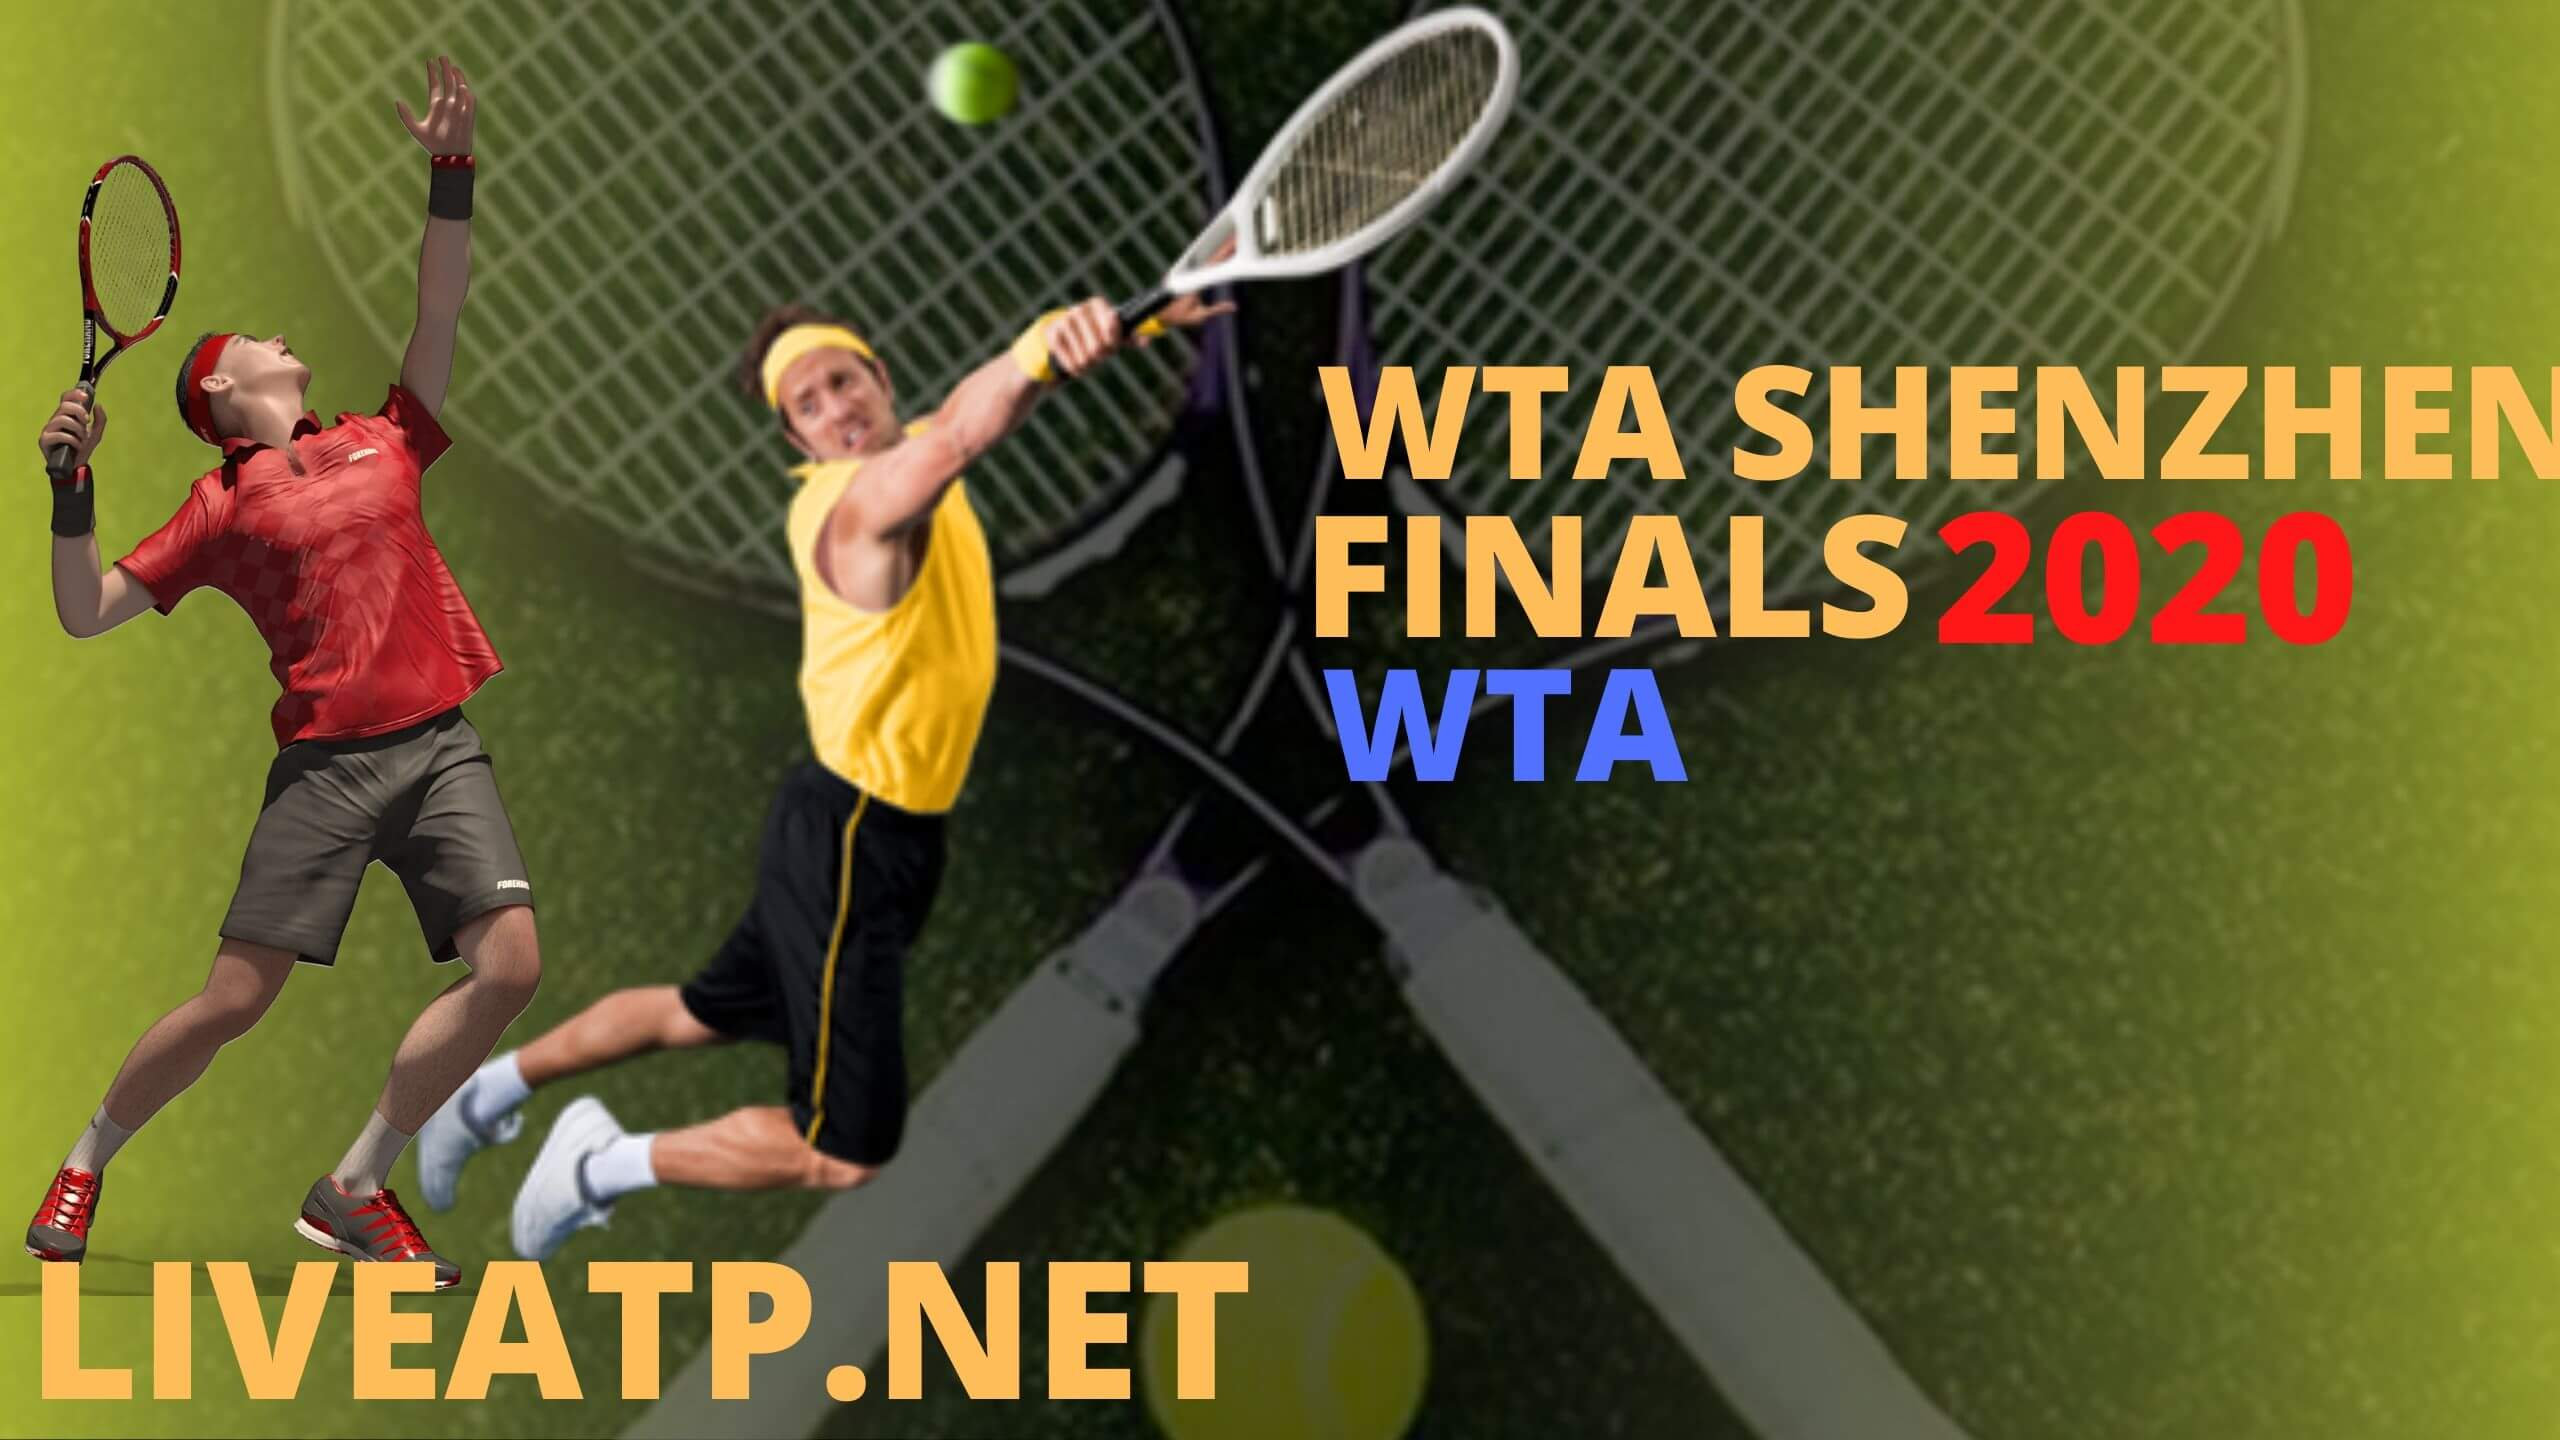 WTA Shenzhen FINALS Live Stream 2020 | Day 3